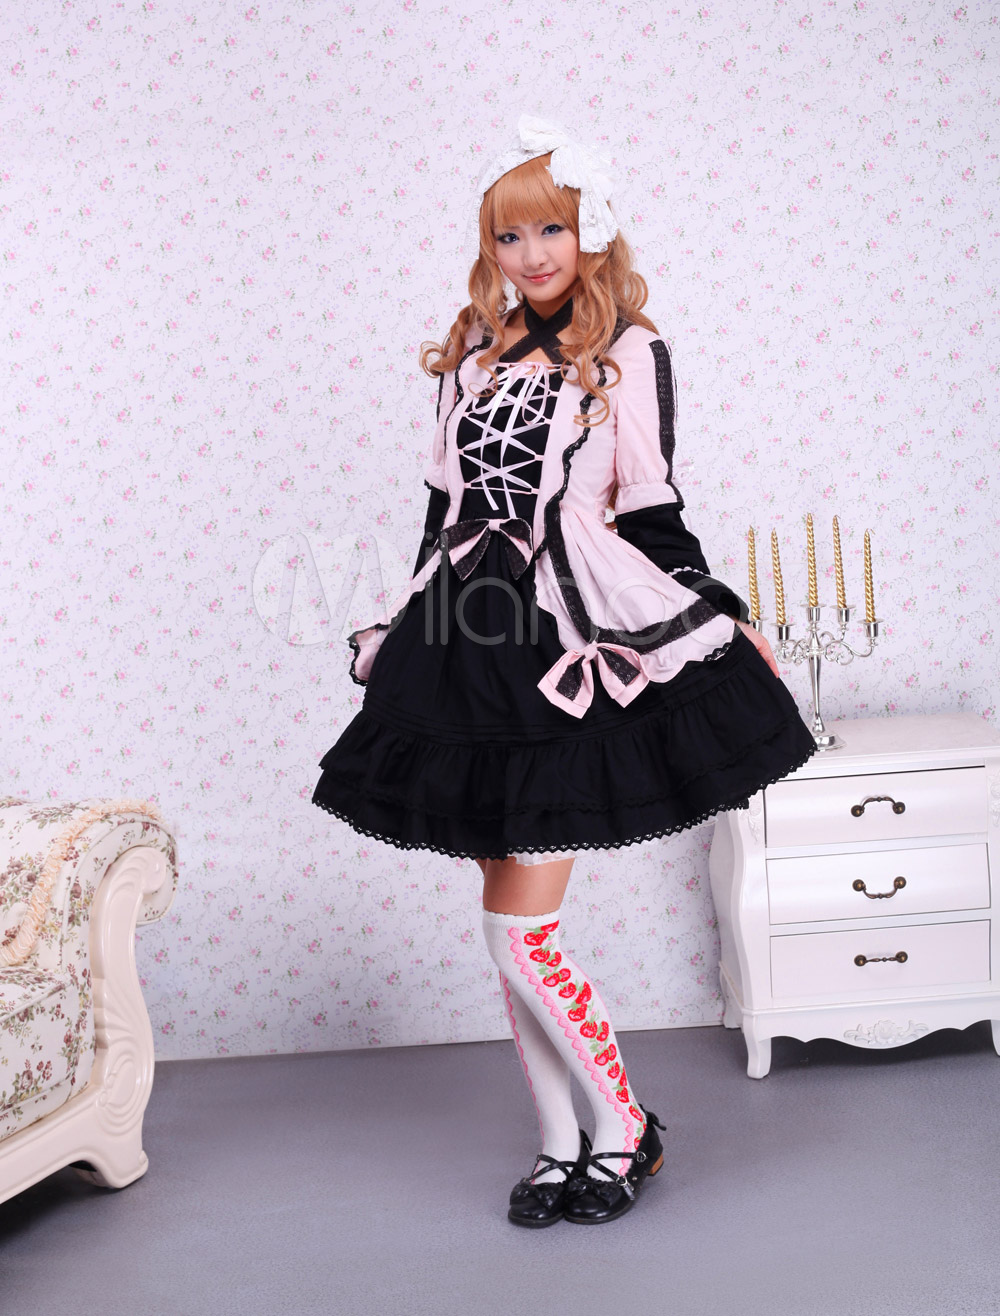 Cute Lace Up Cotton Pink and Black Gothic Lolita Dress gothic and lolita